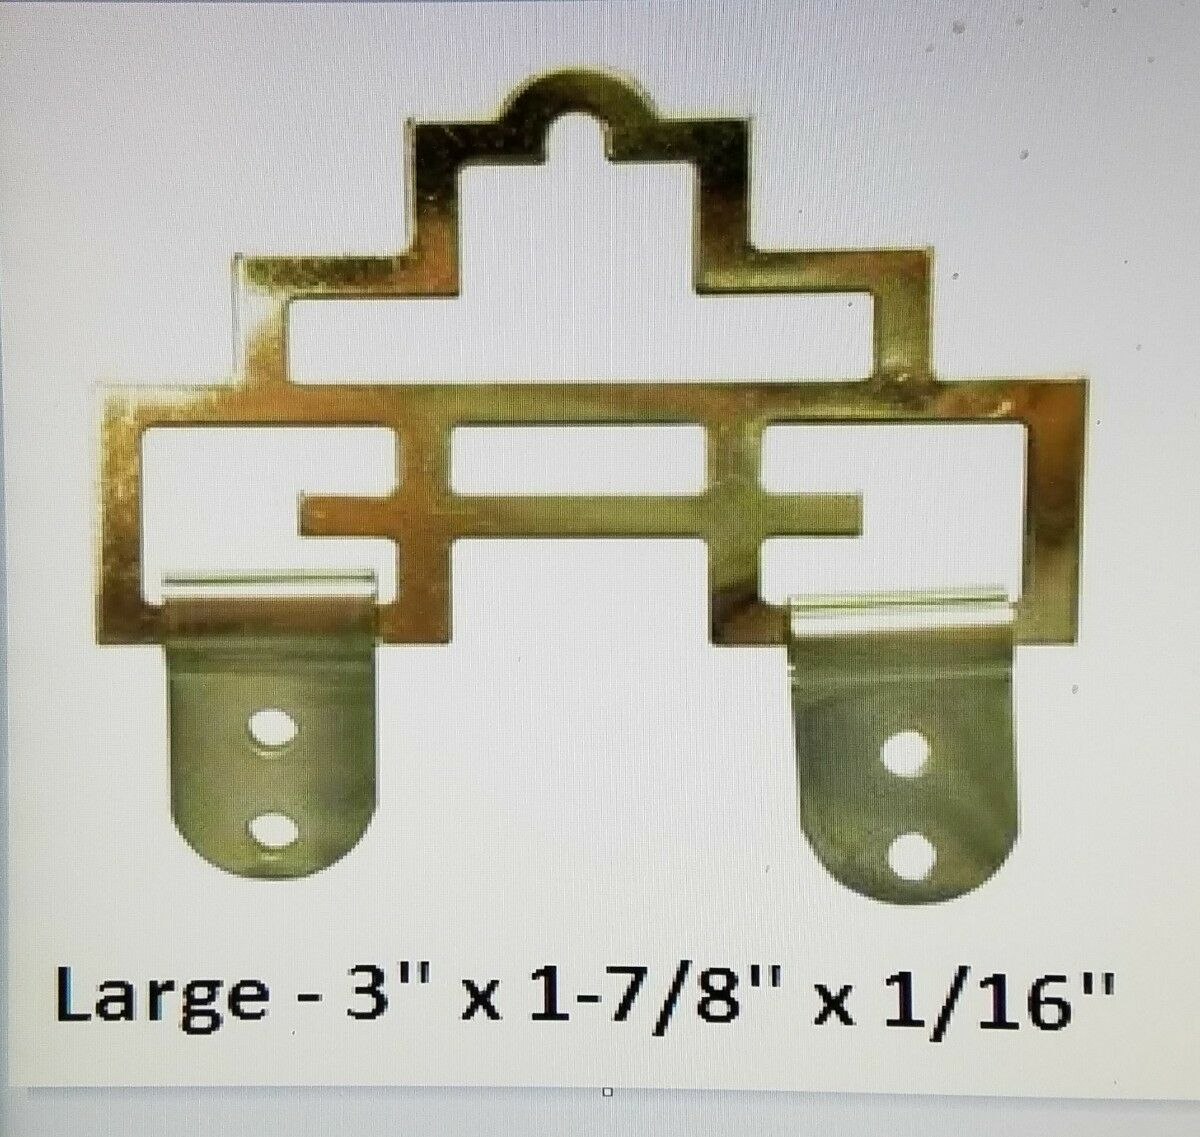 2 metal chinese antique frame art gold wall hangers g4 picture ebay picture 1 of 4 jeuxipadfo Images